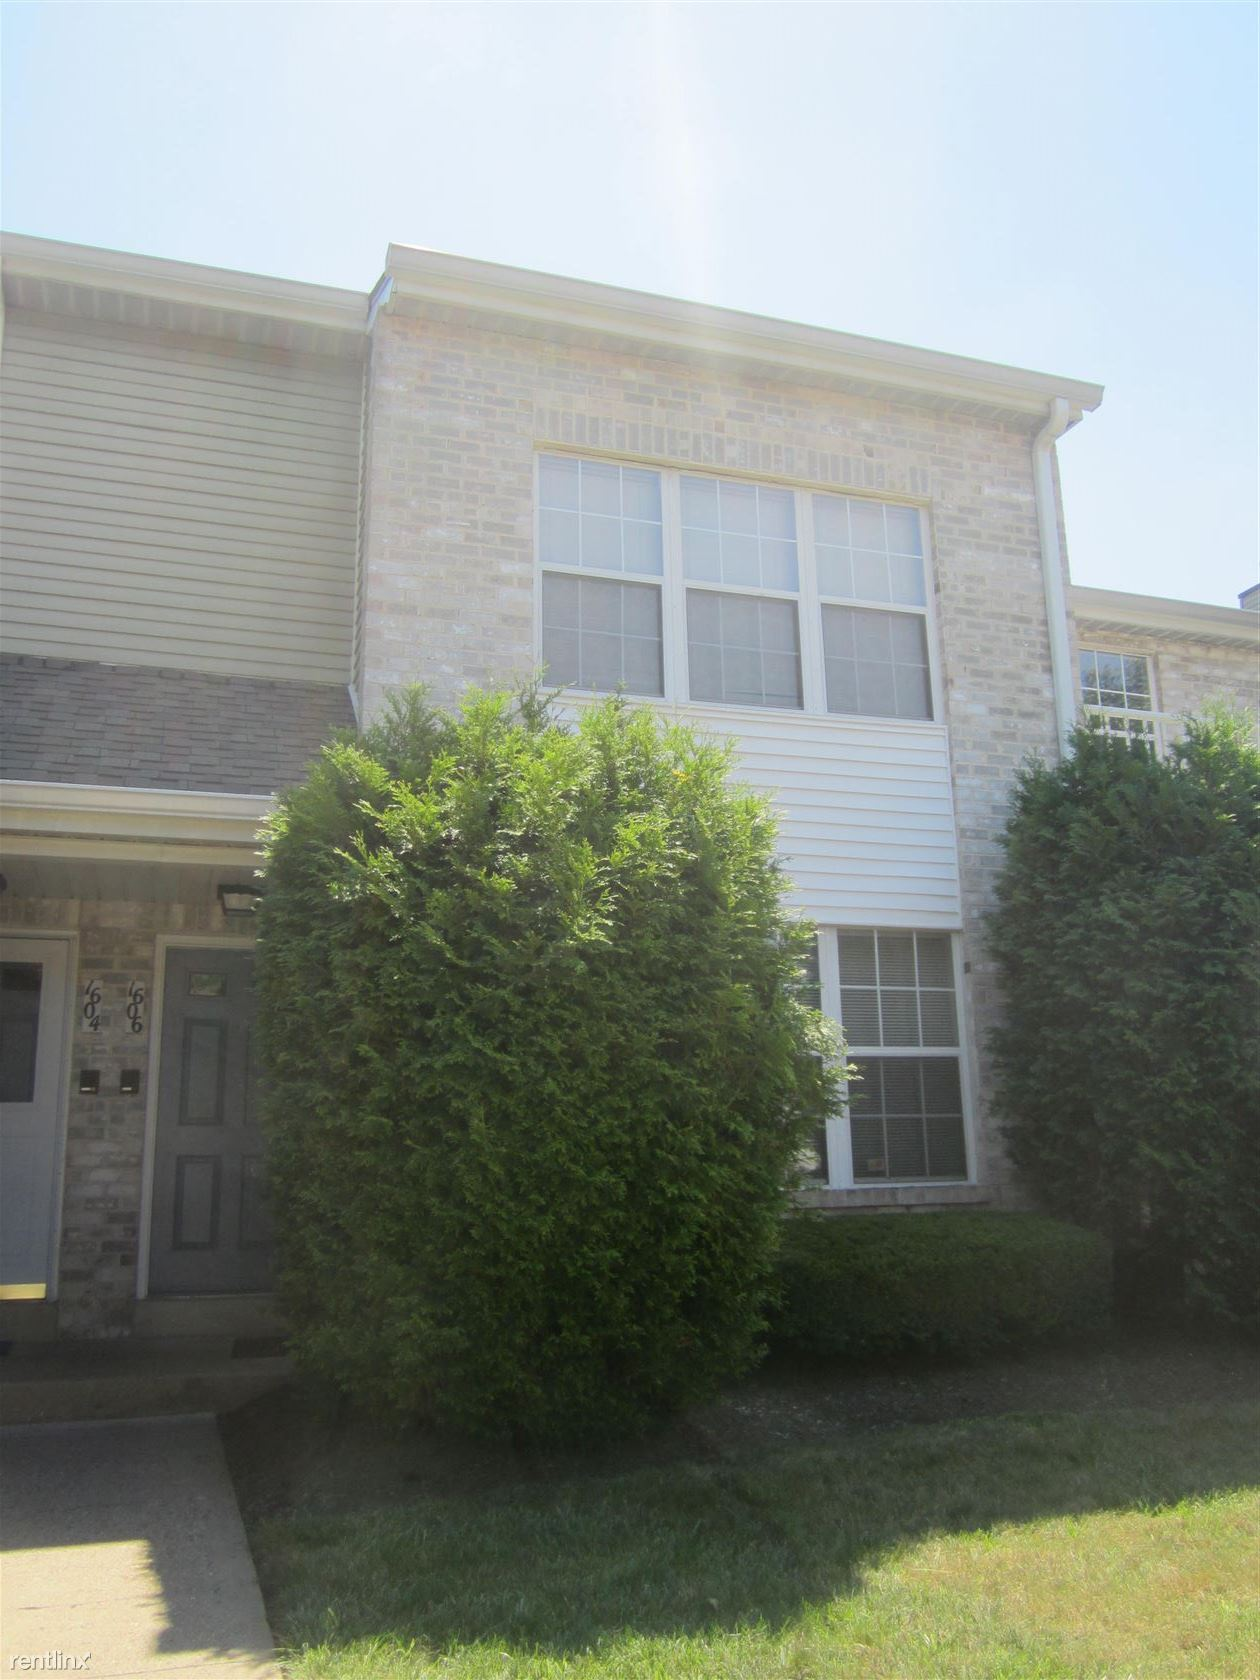 rent ps uh trulia institute ave picture technical philadelphia lancaster pa p lincoln for